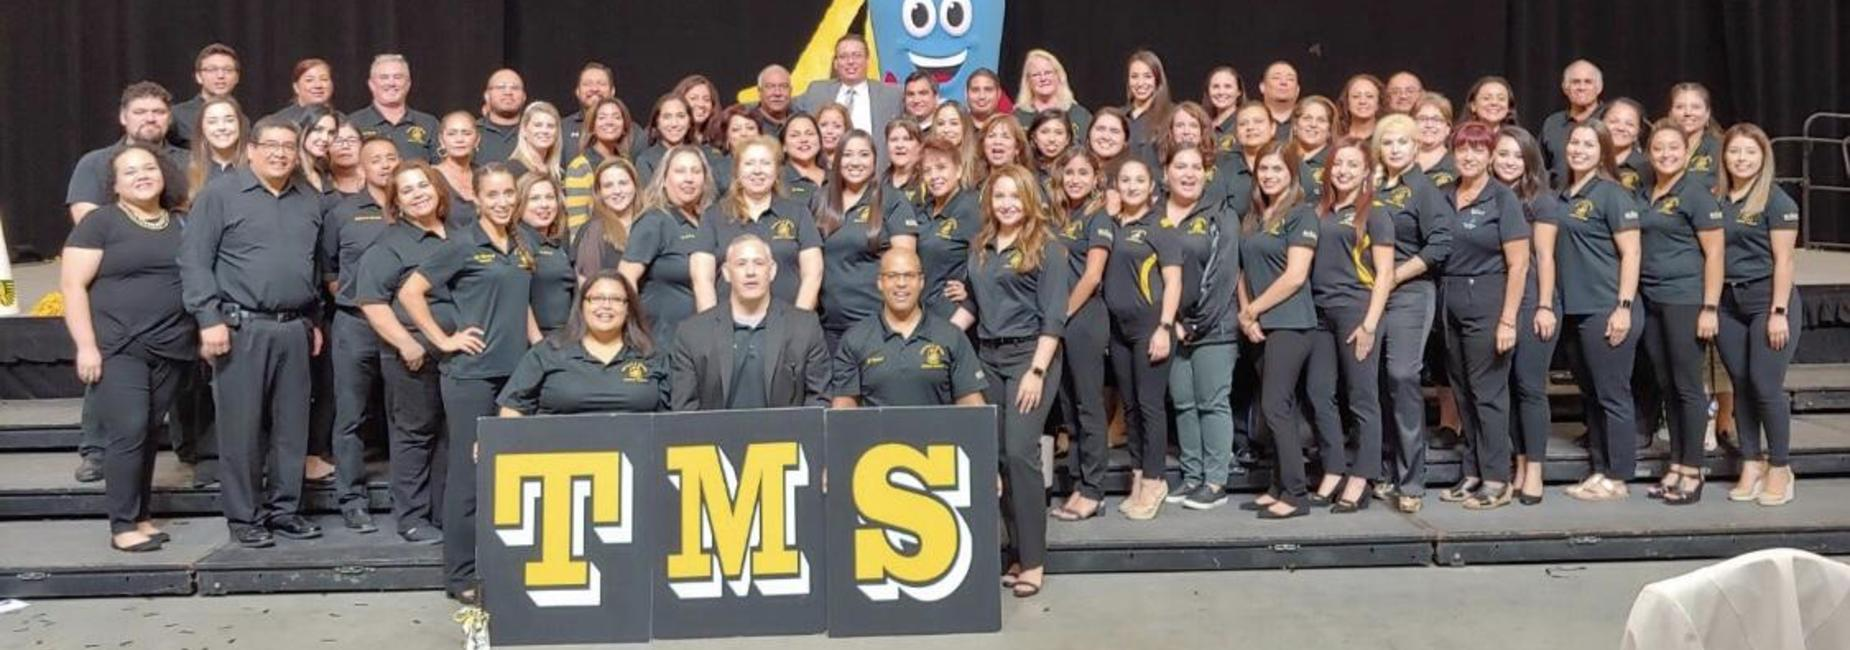 Travis MS Staff